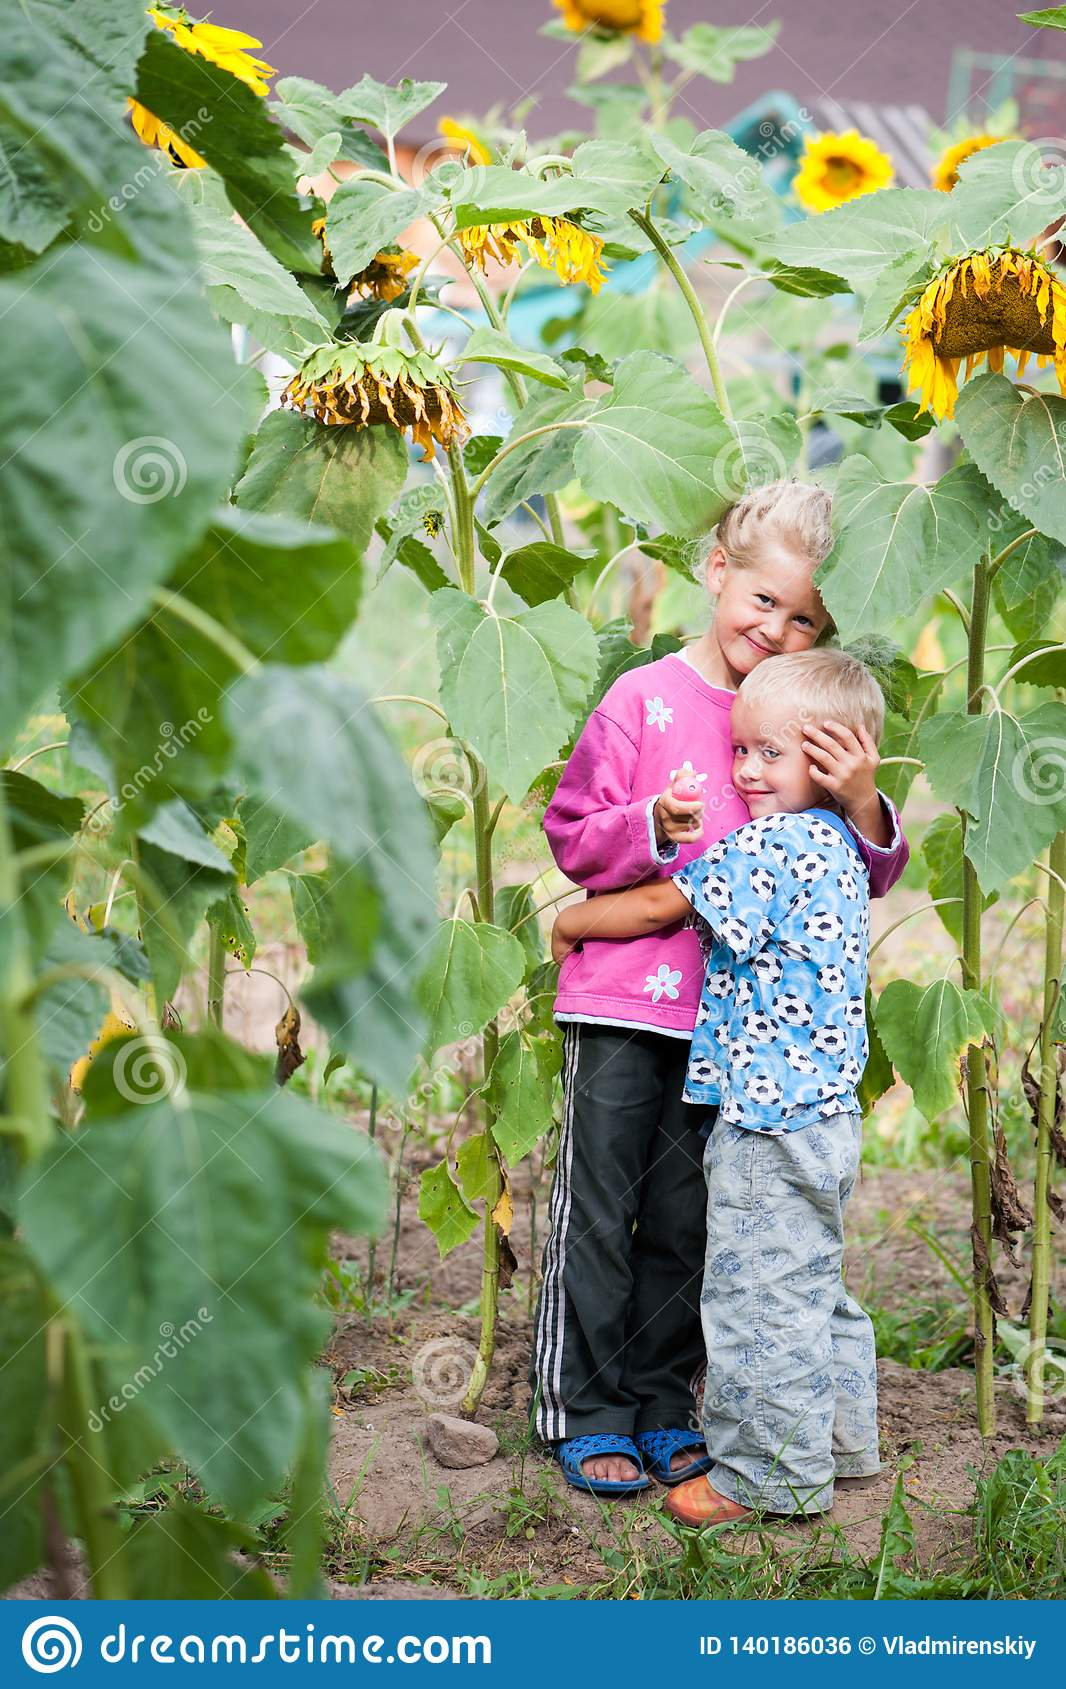 Living happy children brother and sister in the thickets of sunflower in the backyard of the farm